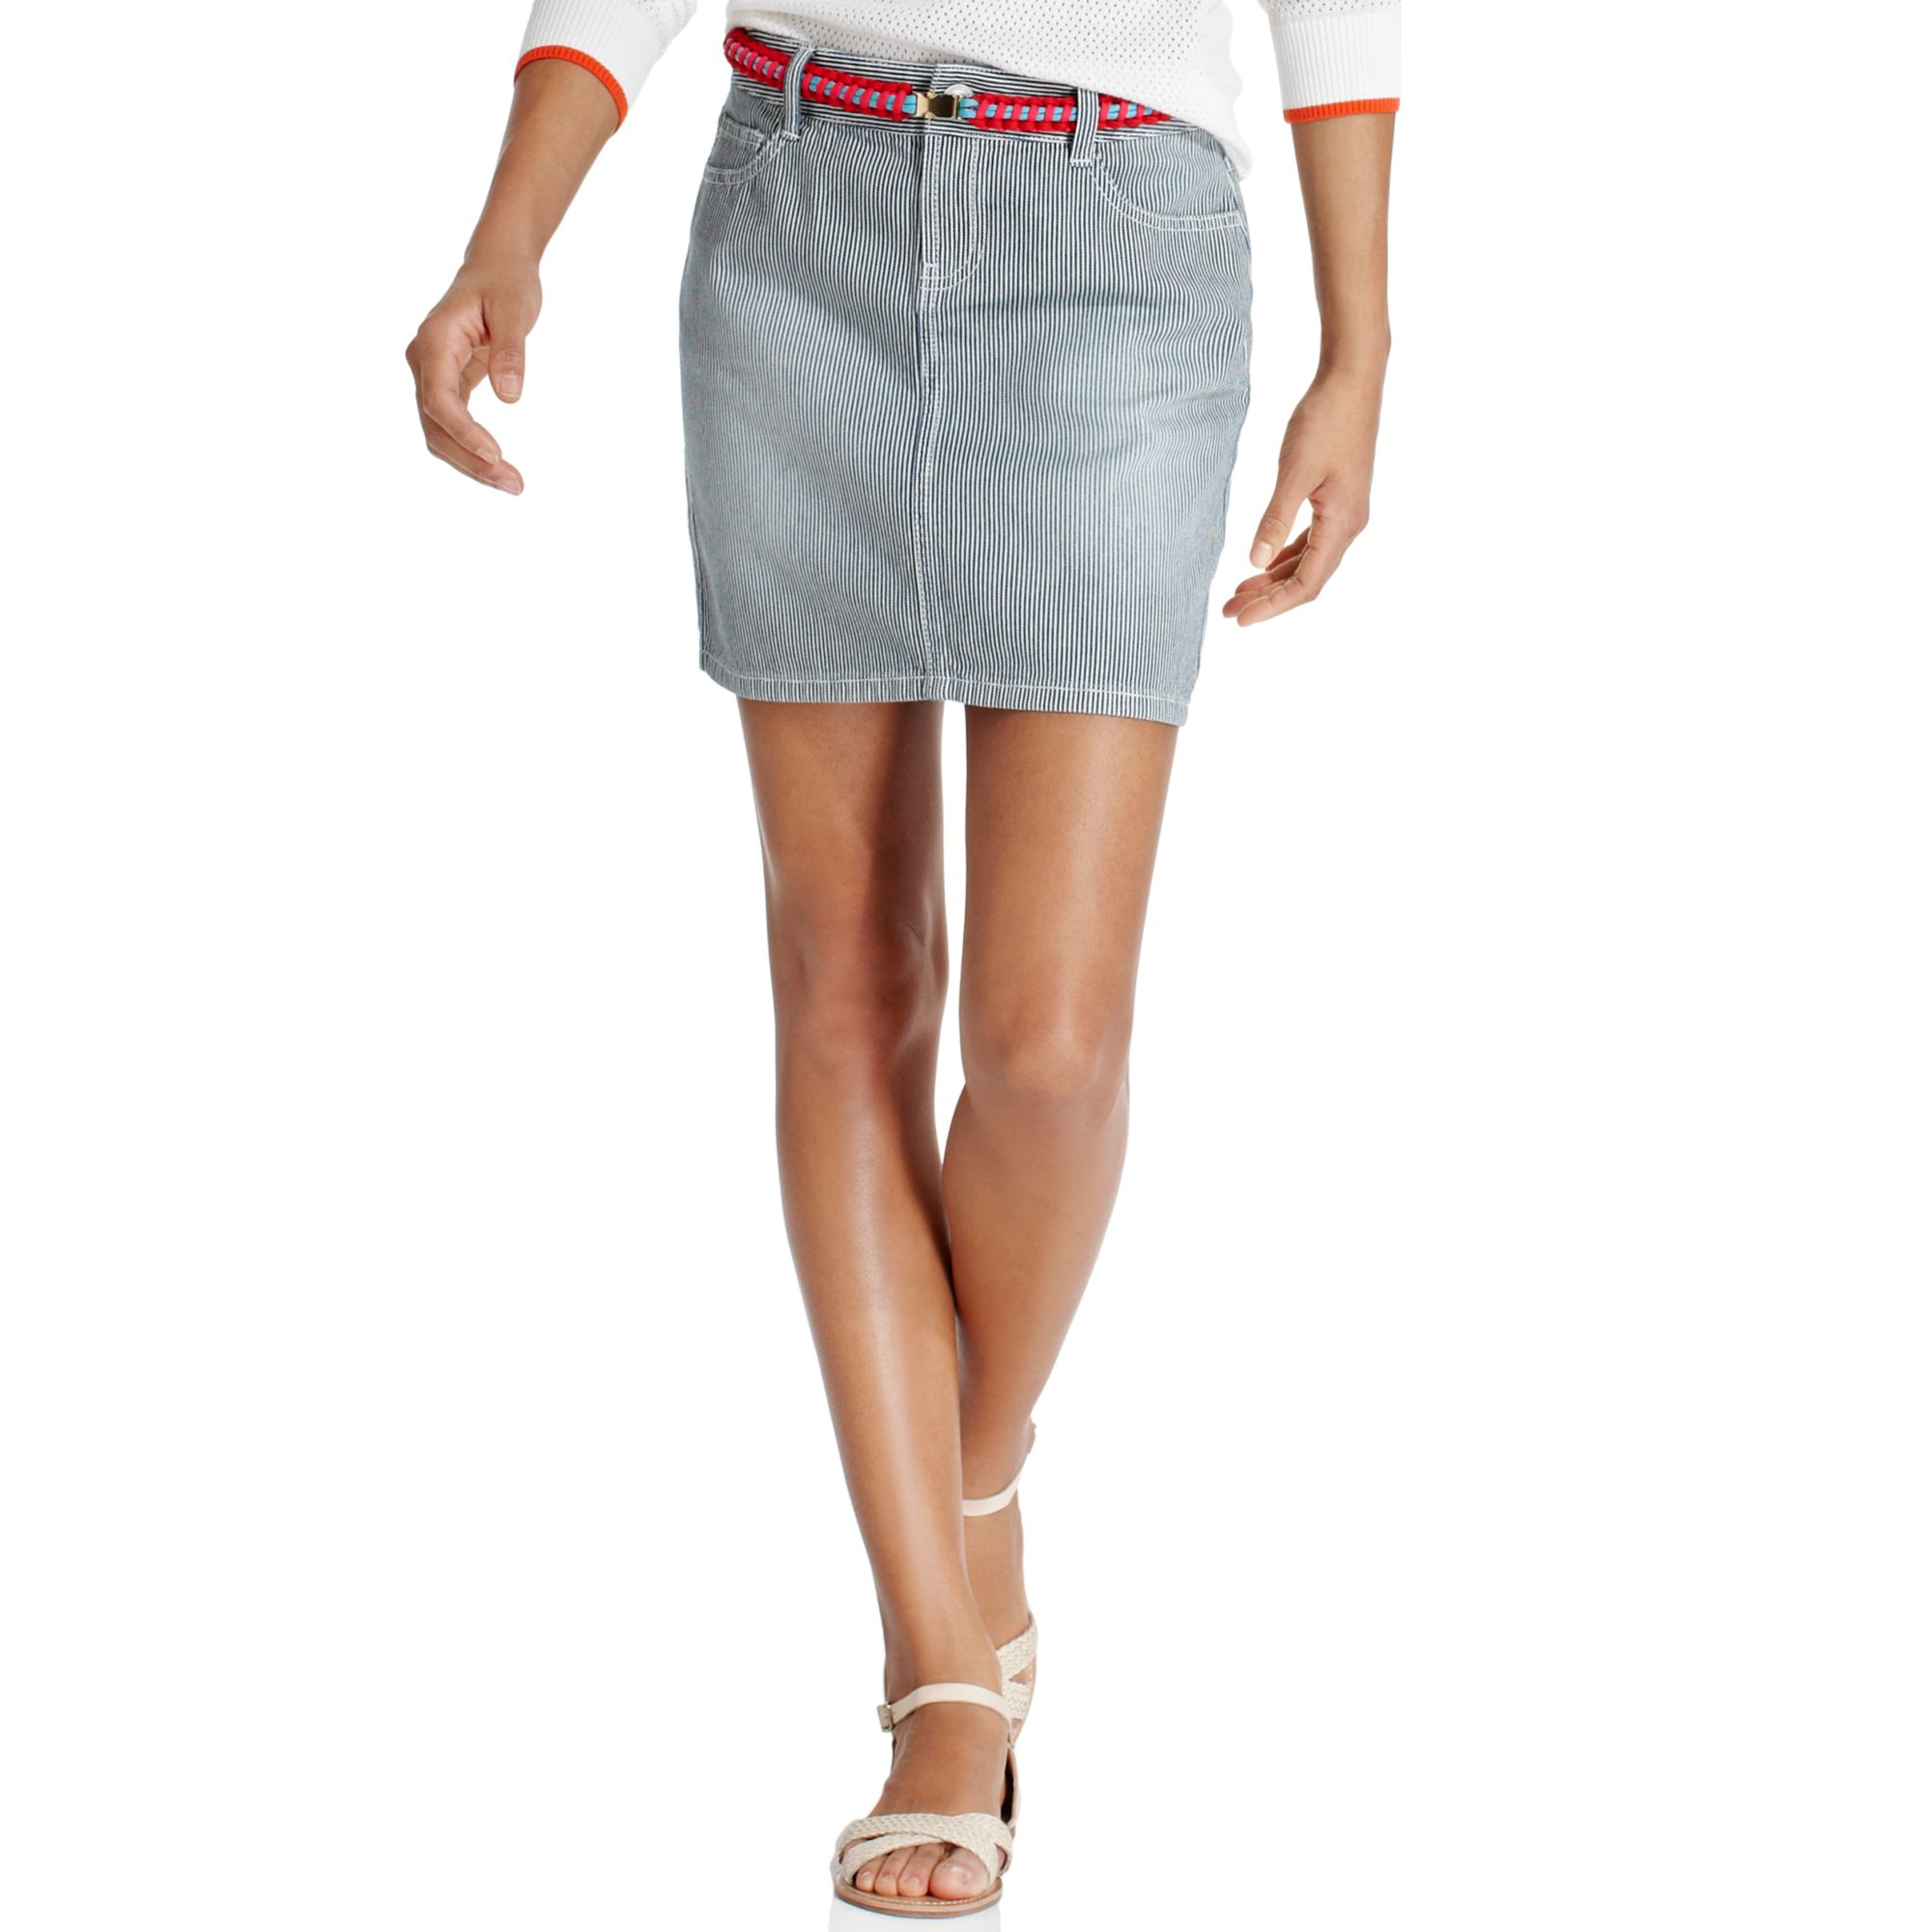 Tommy hilfiger Grey Pinstriped Denim Mini Skirt in Blue | Lyst